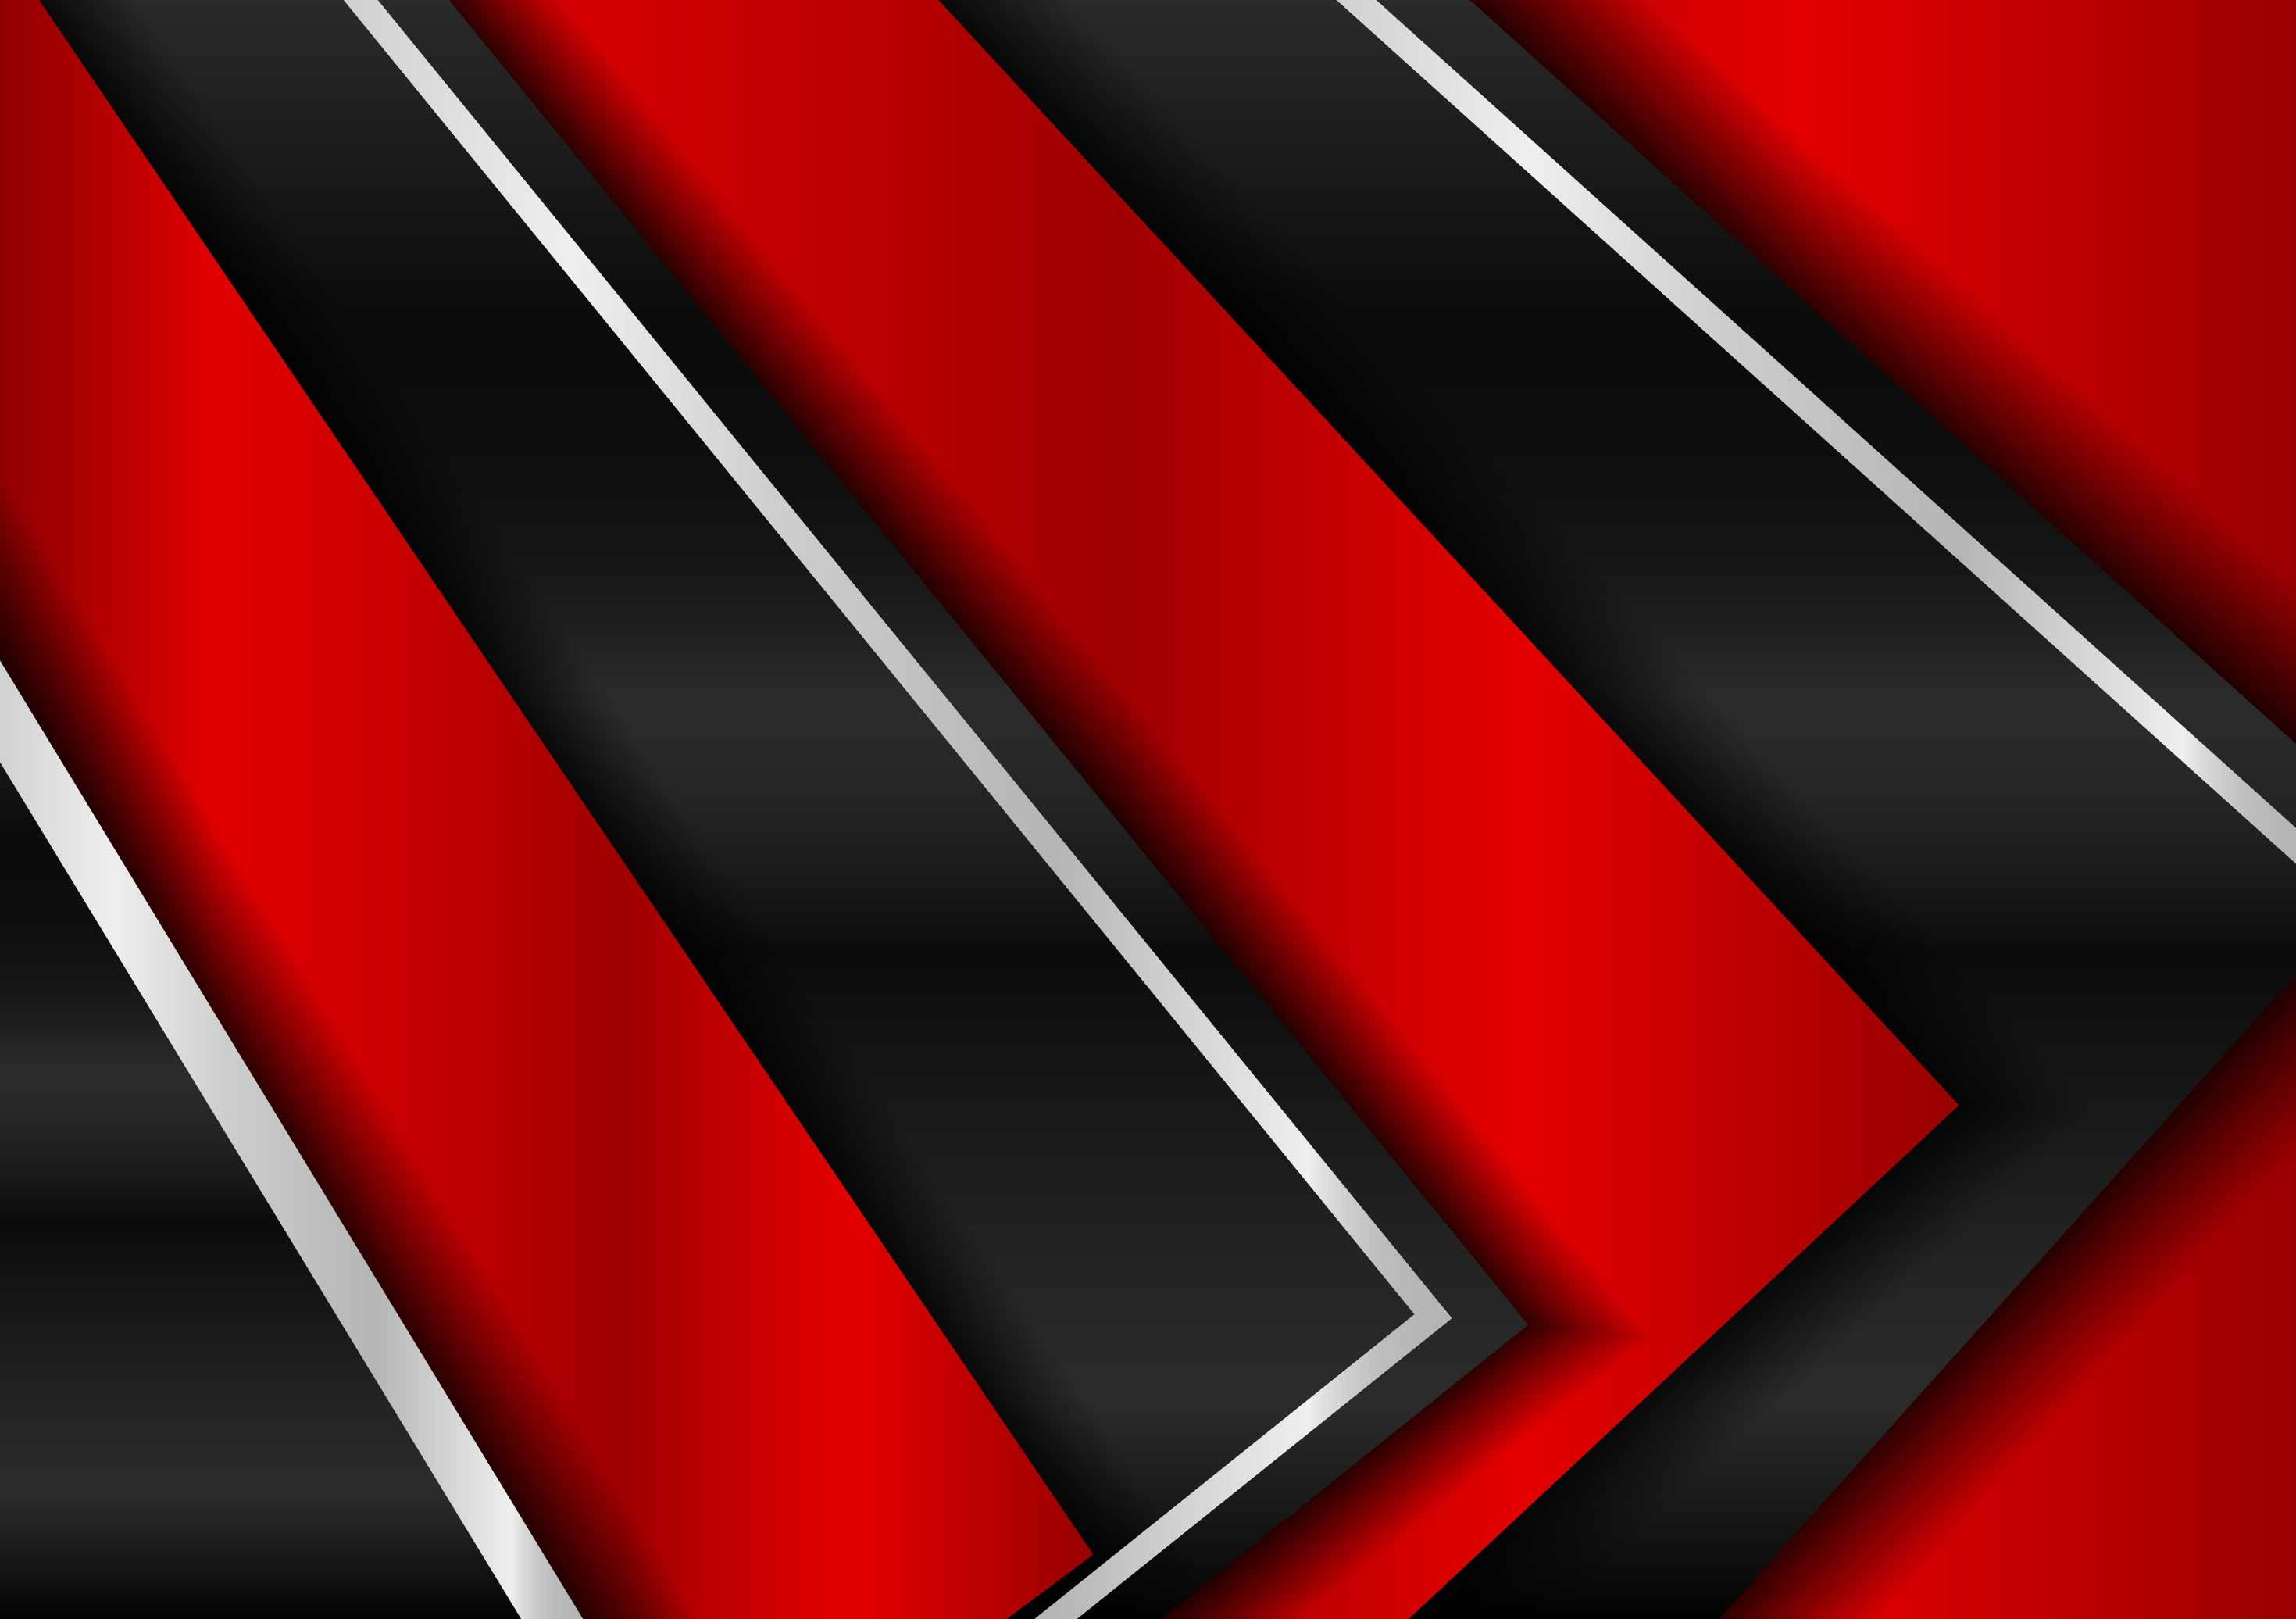 Abstract Dark Black And Red Wallpaper Metal Background Black And Red Dark Wallpaper